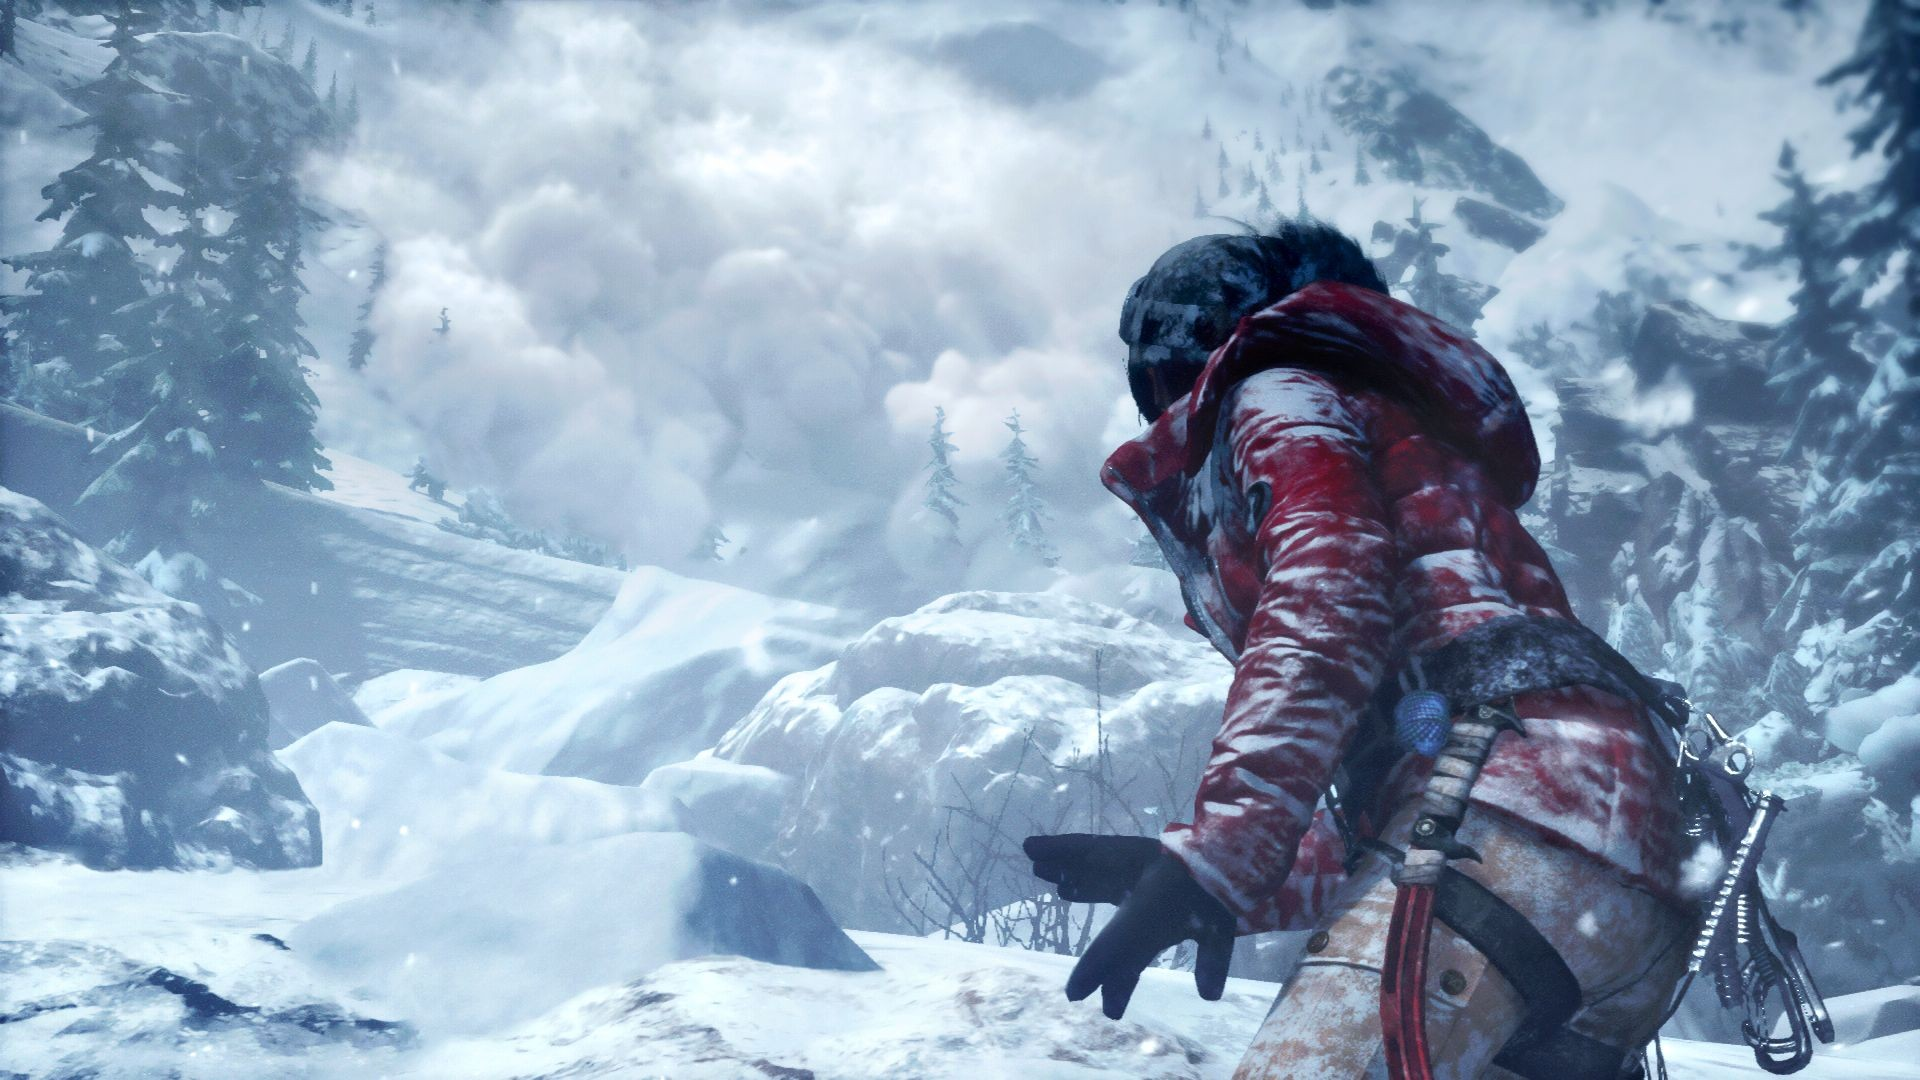 Rise of the Tomb Raider Gameplay Trailer Arrives at 1 PM CET